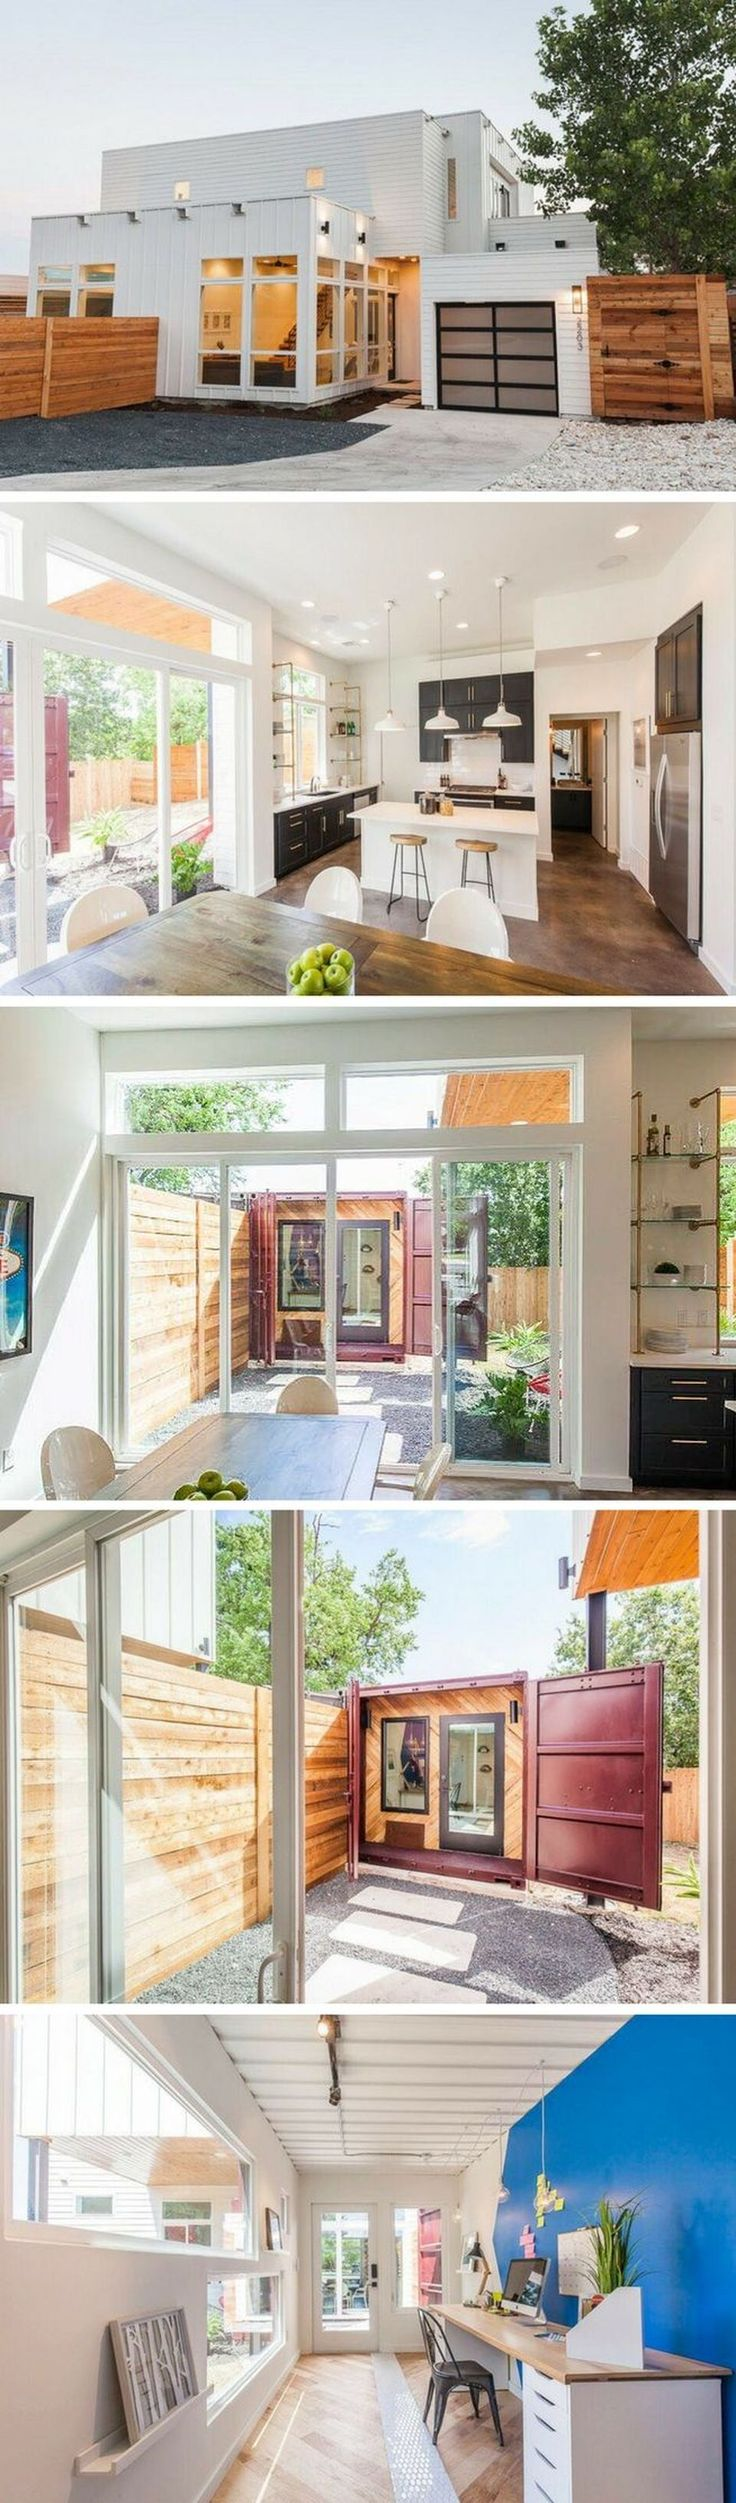 DesertRose,;,Amazing Shipping Container House Design Ideas,;,